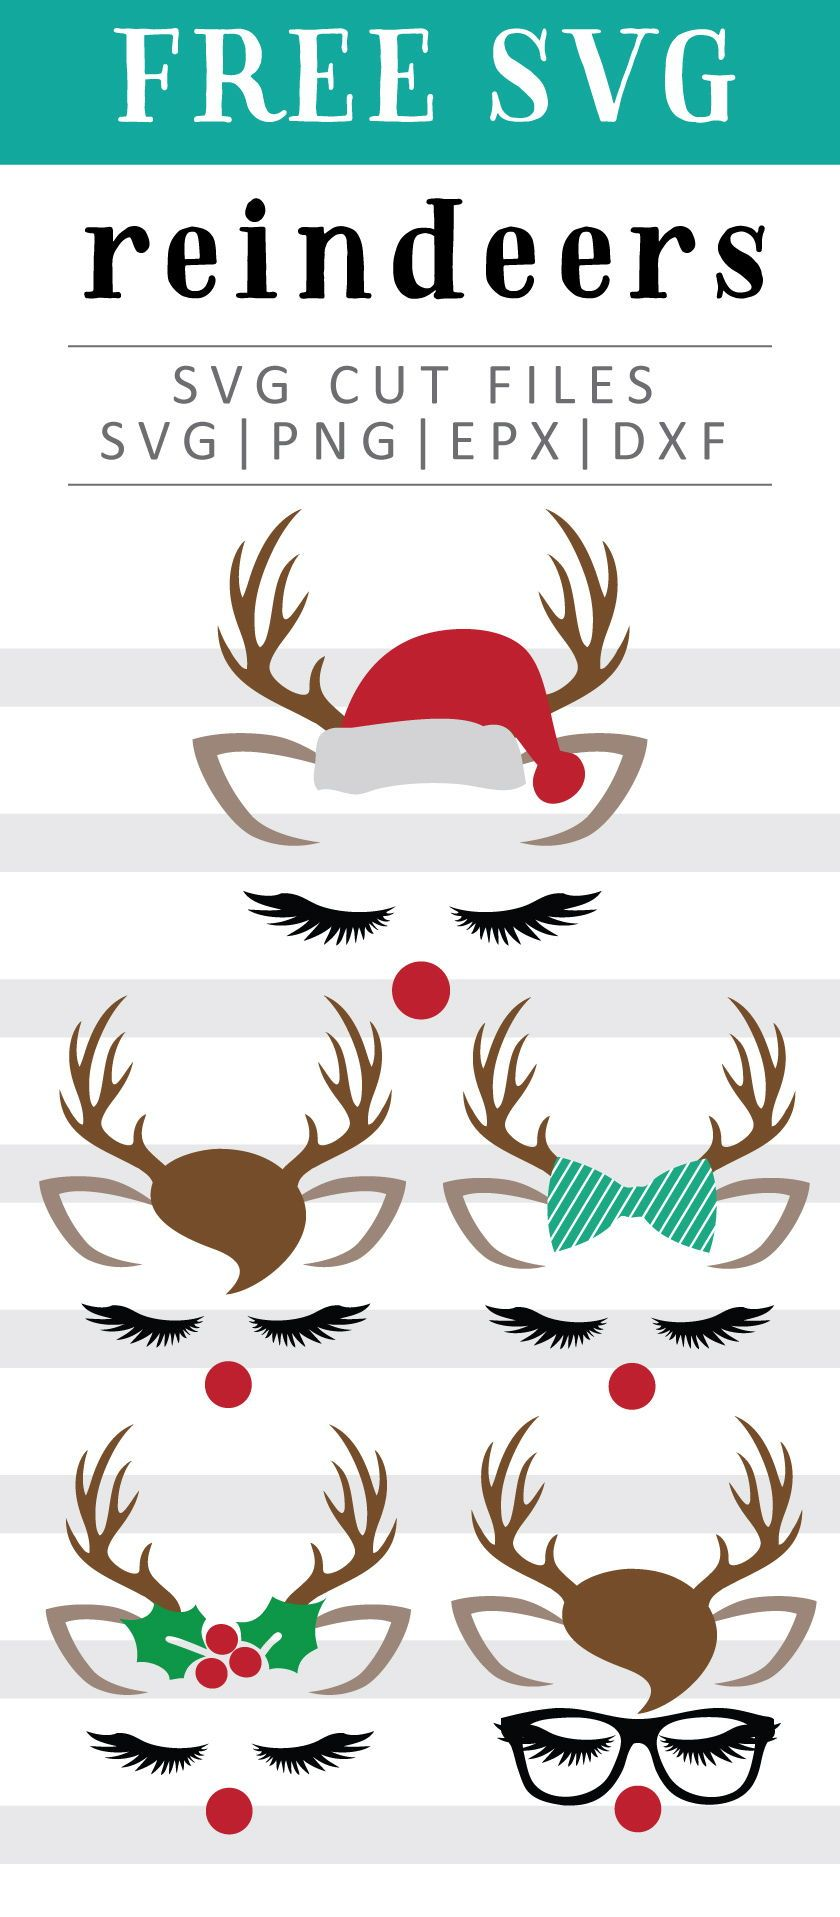 Reindeer Antlers Cut Out Png Free Reindeer Antlers Cut Out Png Transparent Images 85627 Pngio